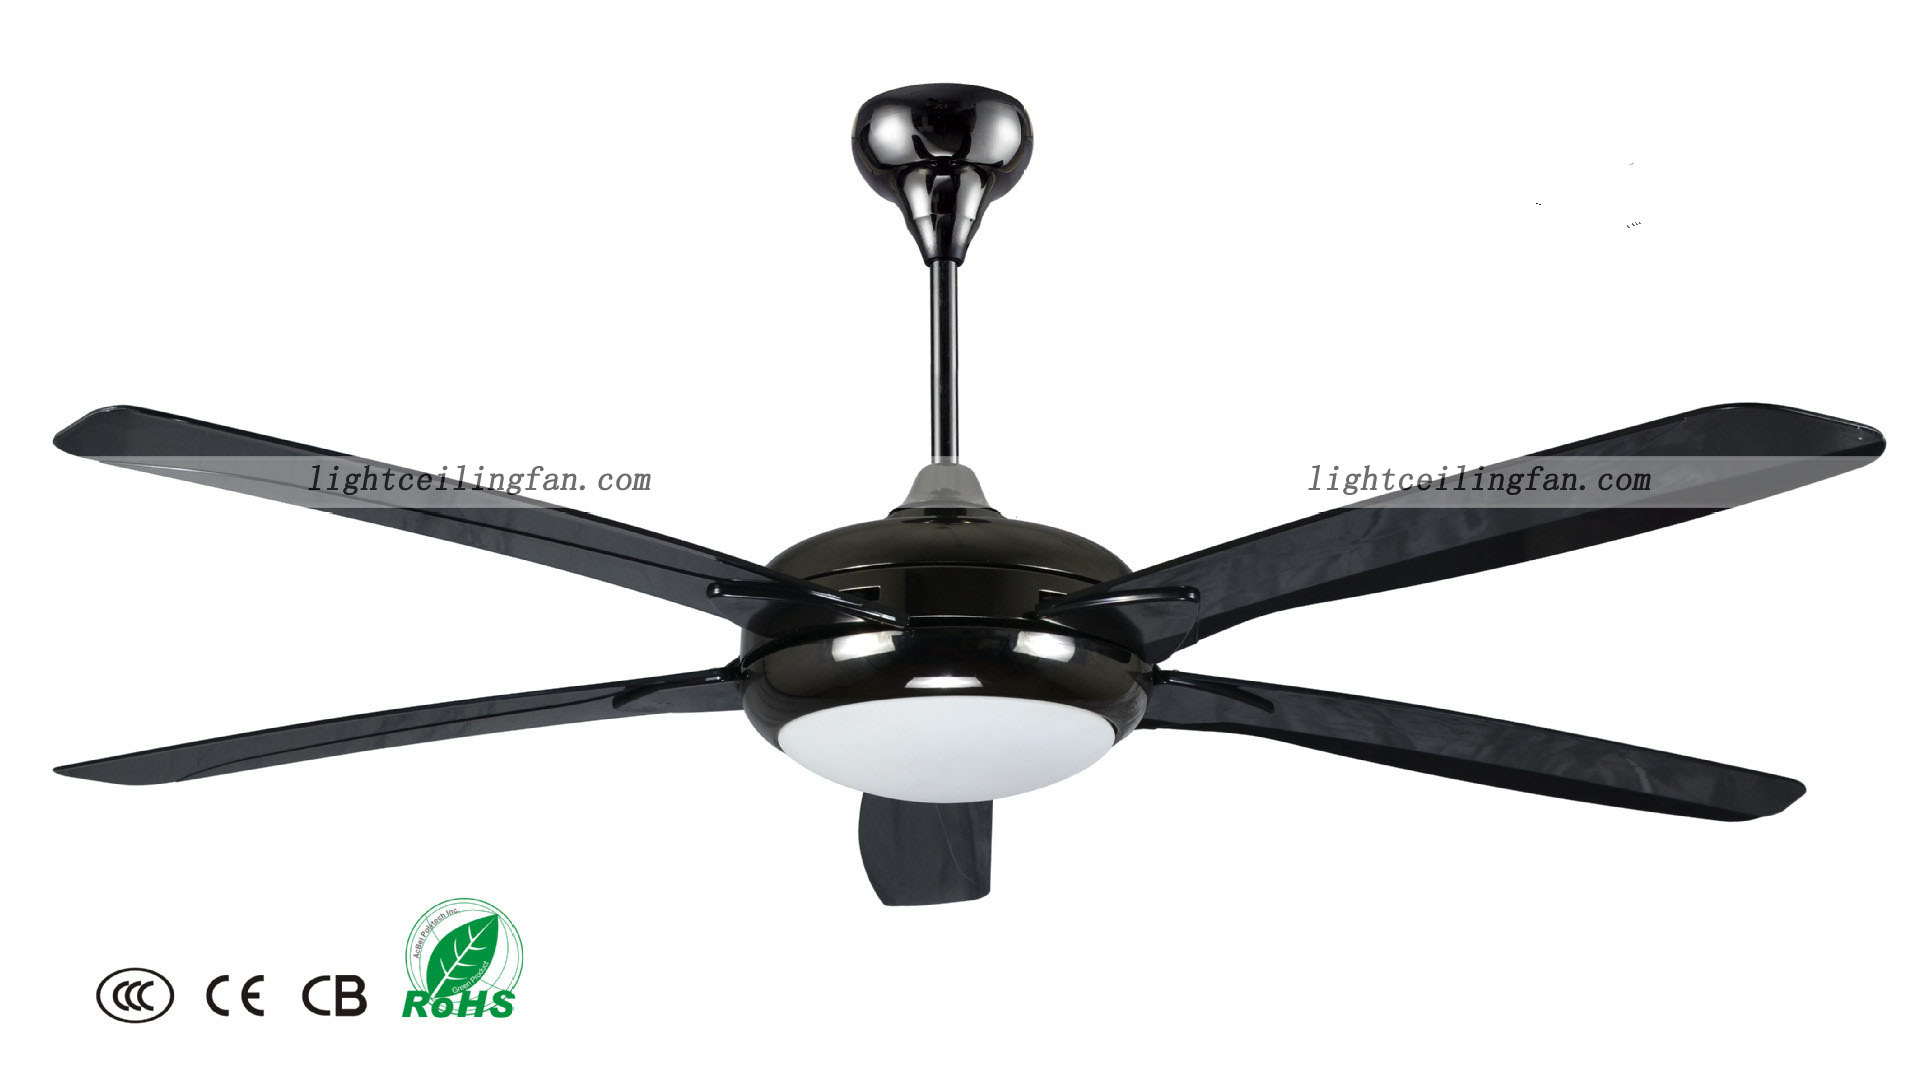 56inch Black Decorative Ceiling Fans With Remote Control